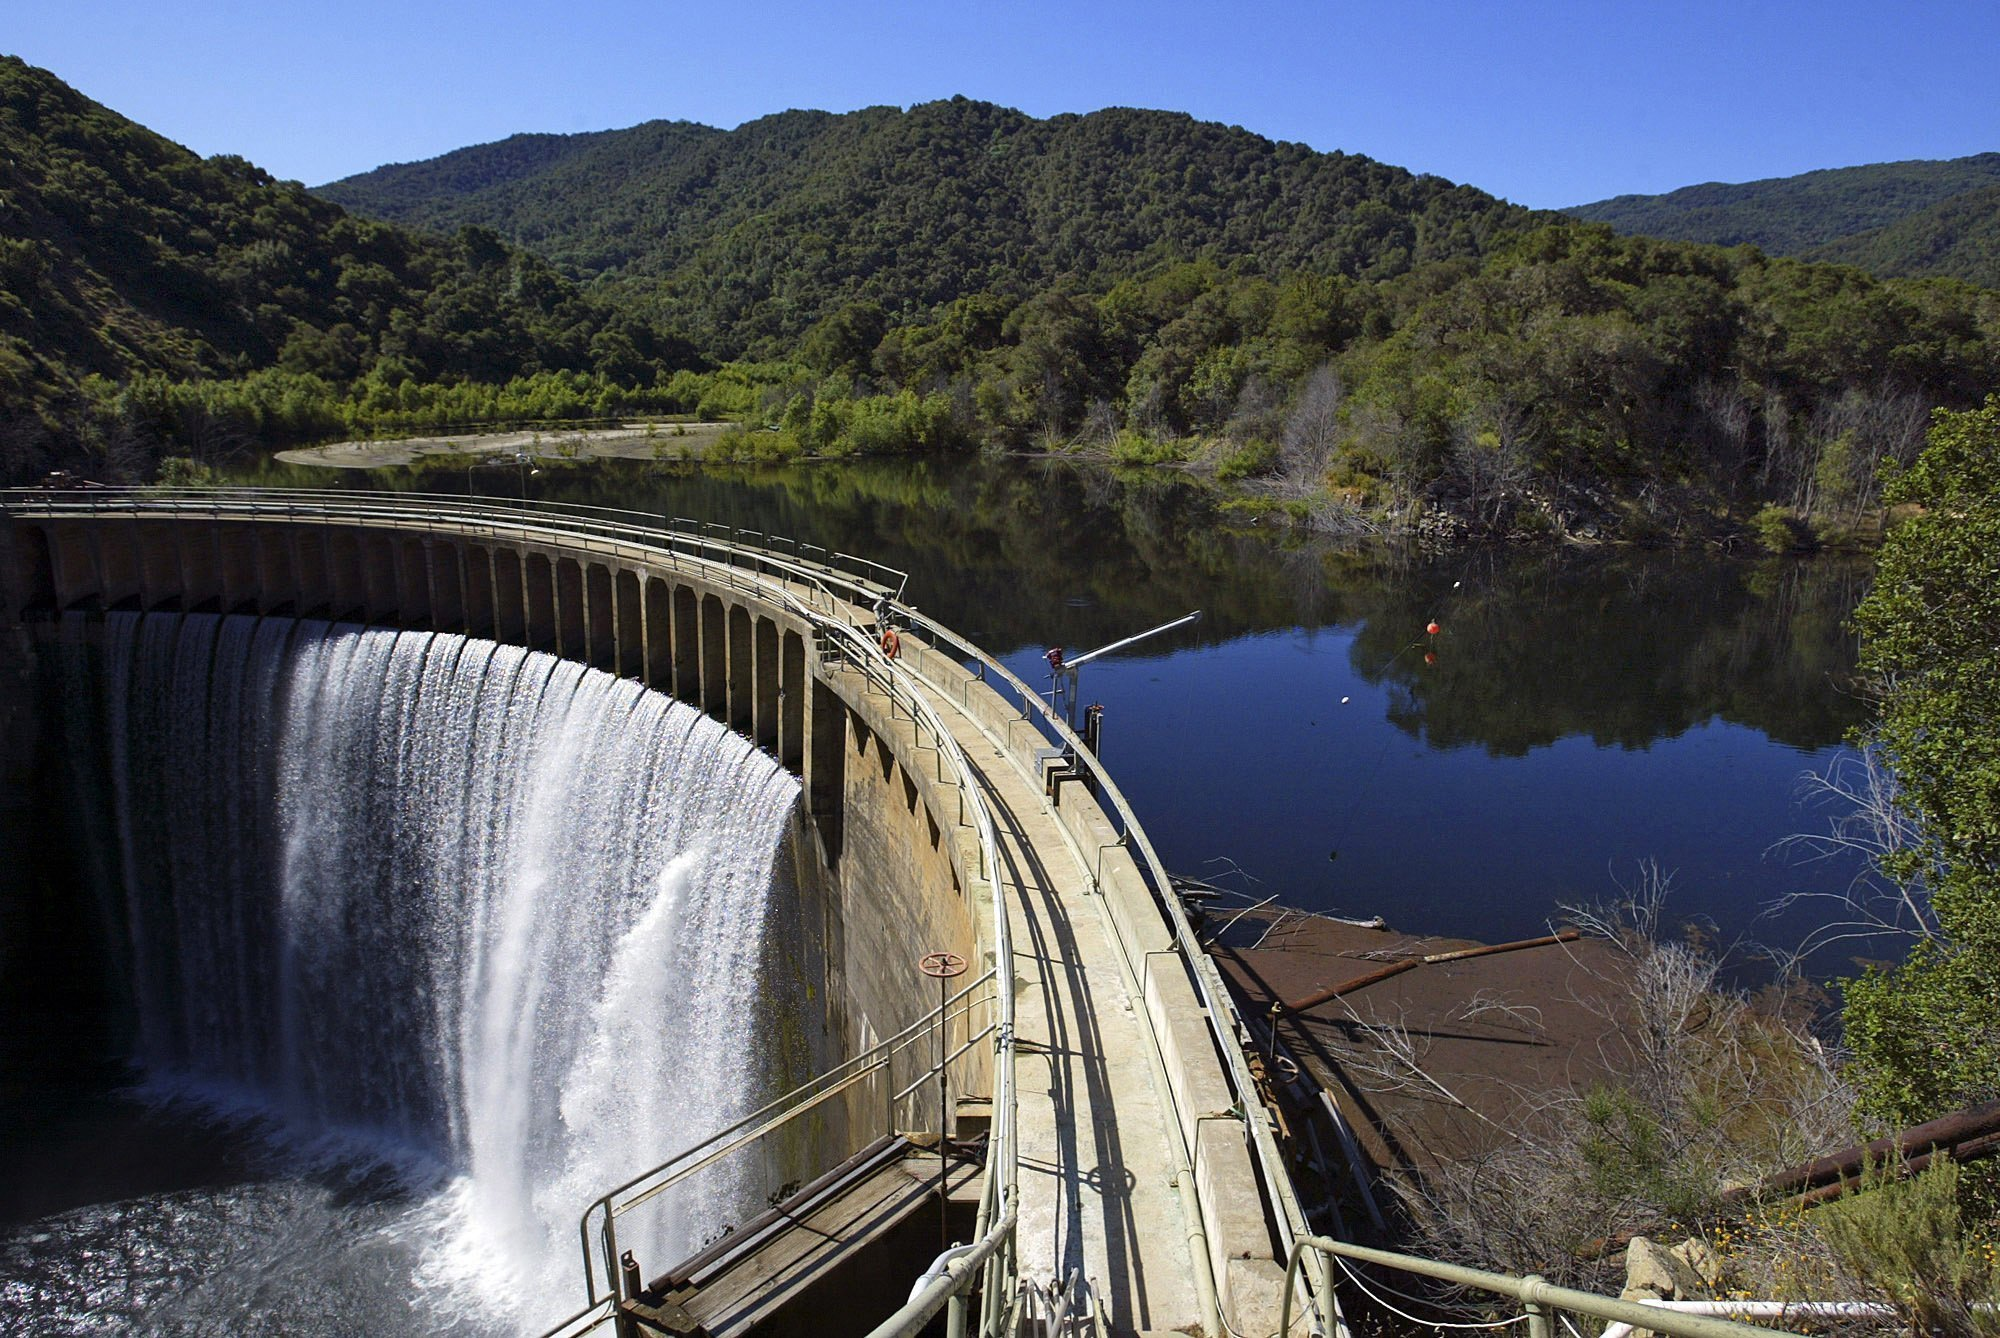 Dams  Reservoirs May Not Be Best Drought Solution